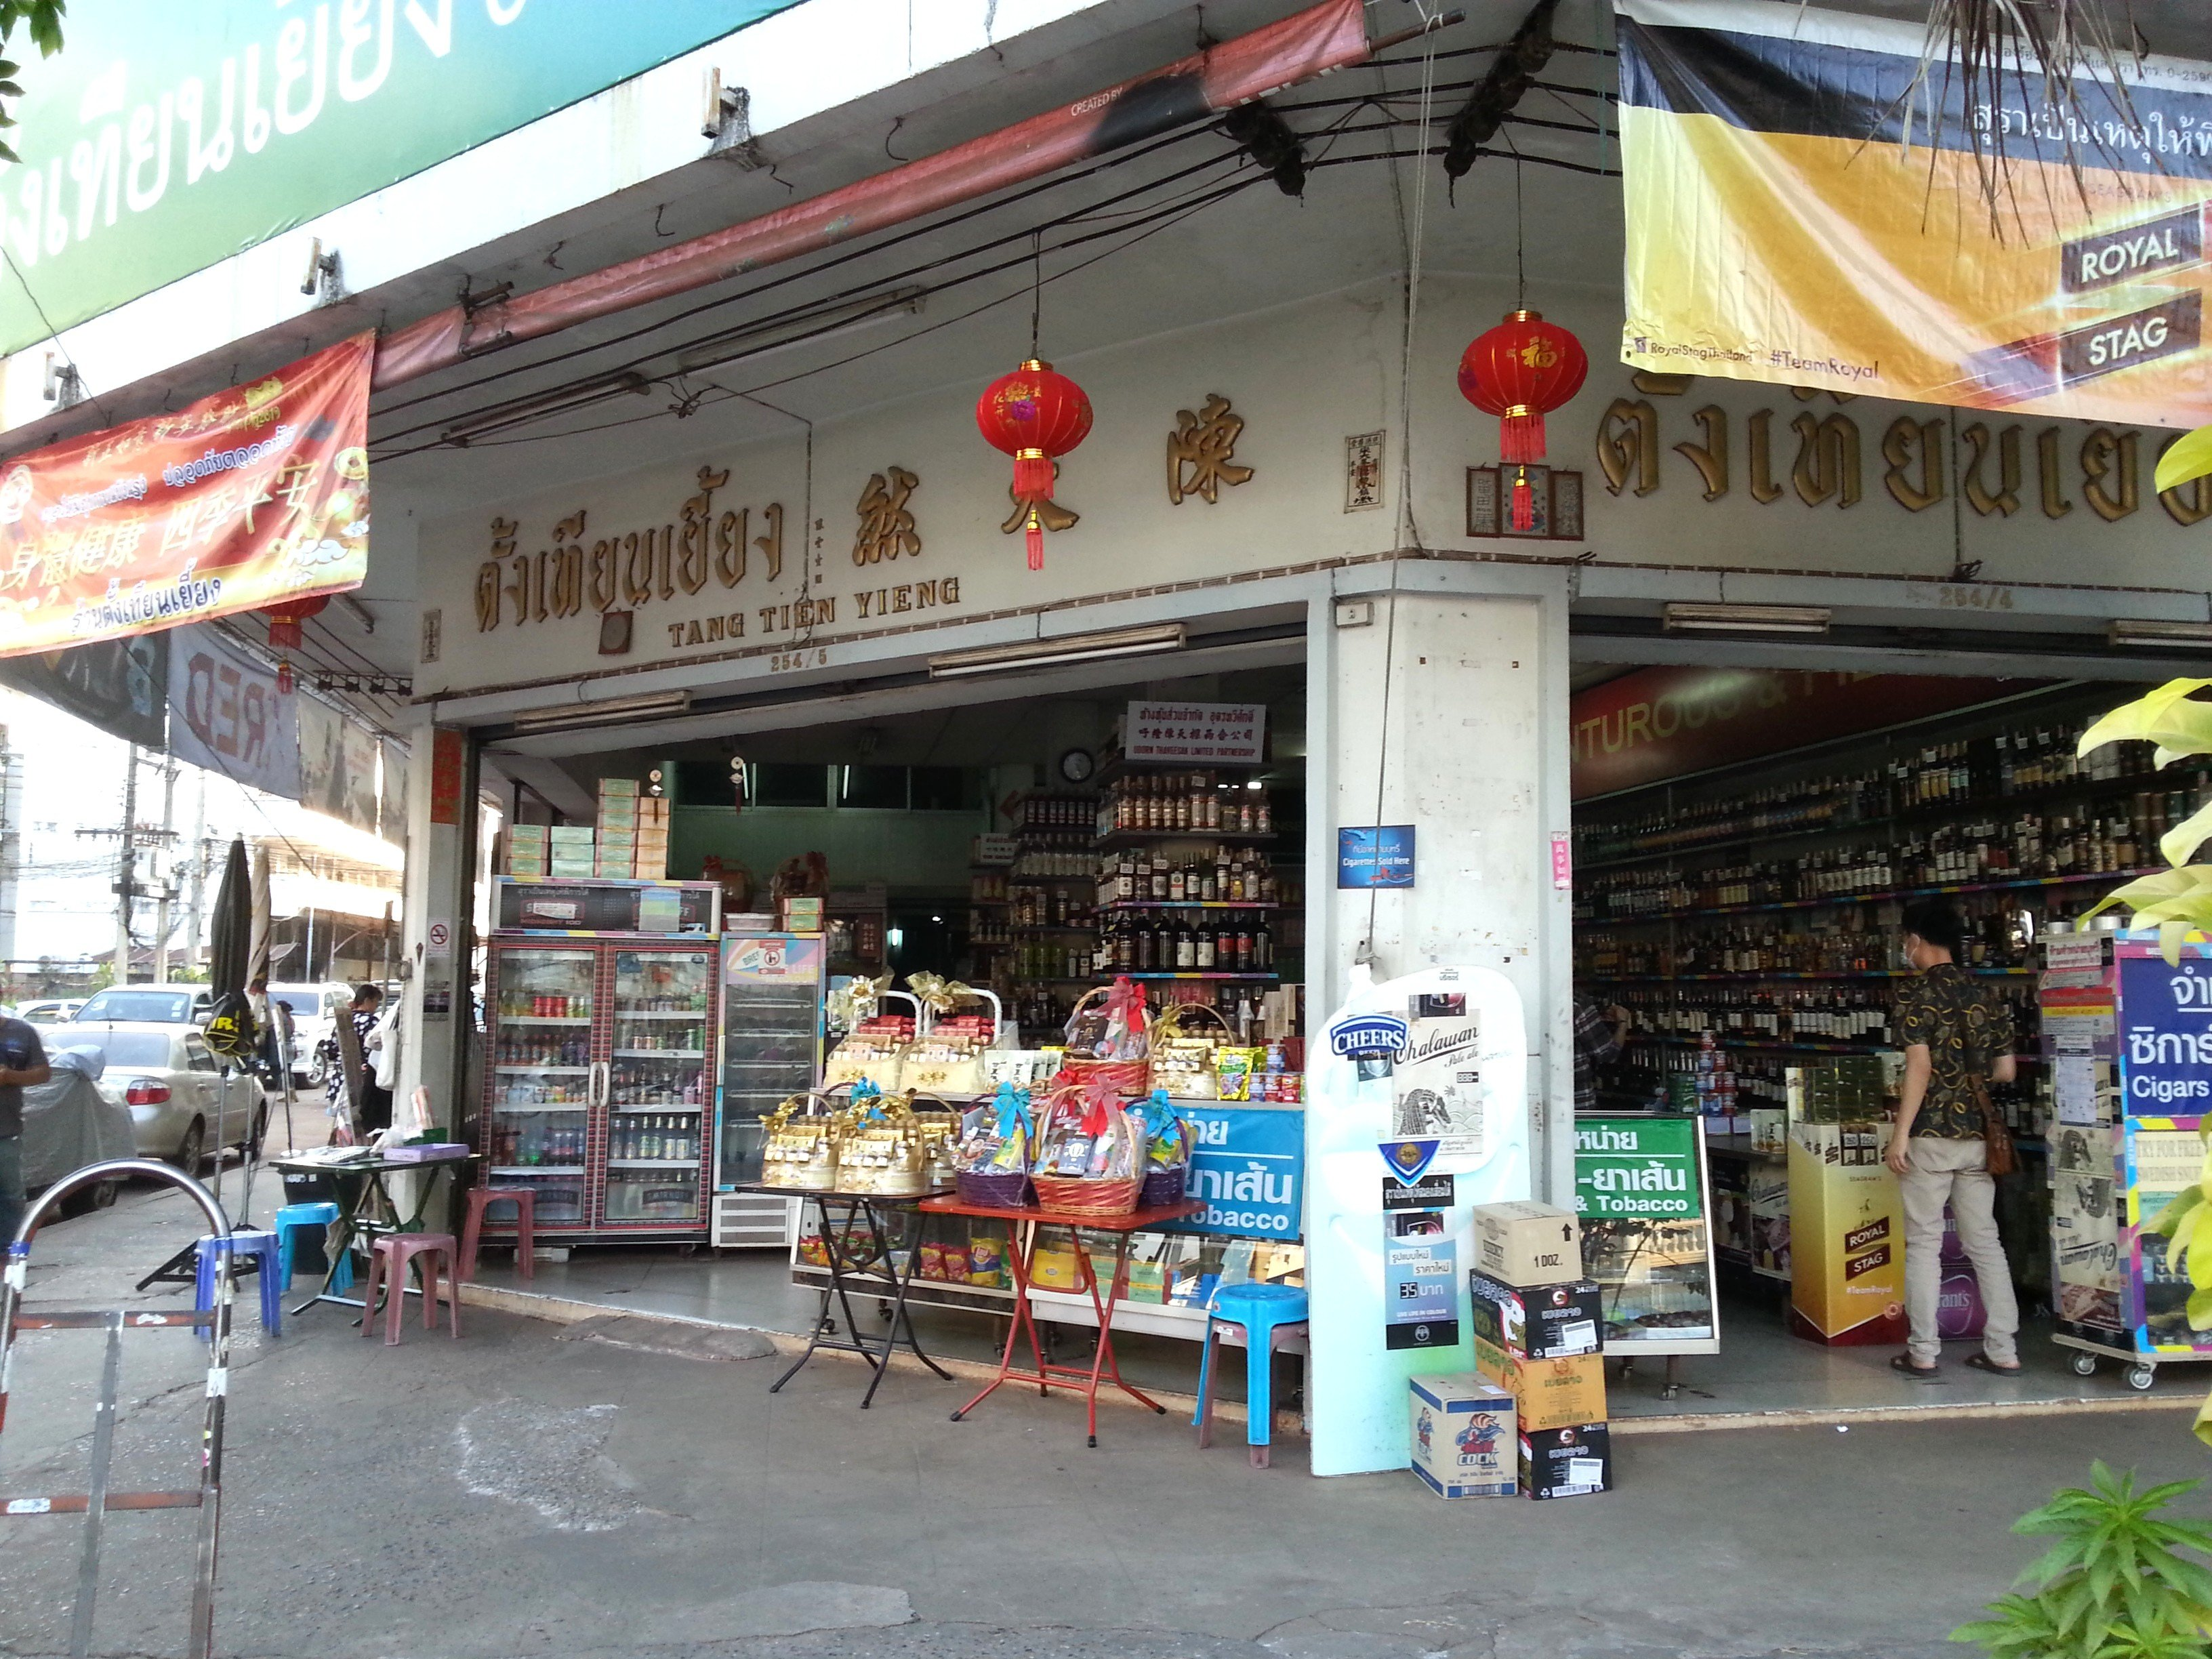 Rolling tobacco shop in Udon Thani